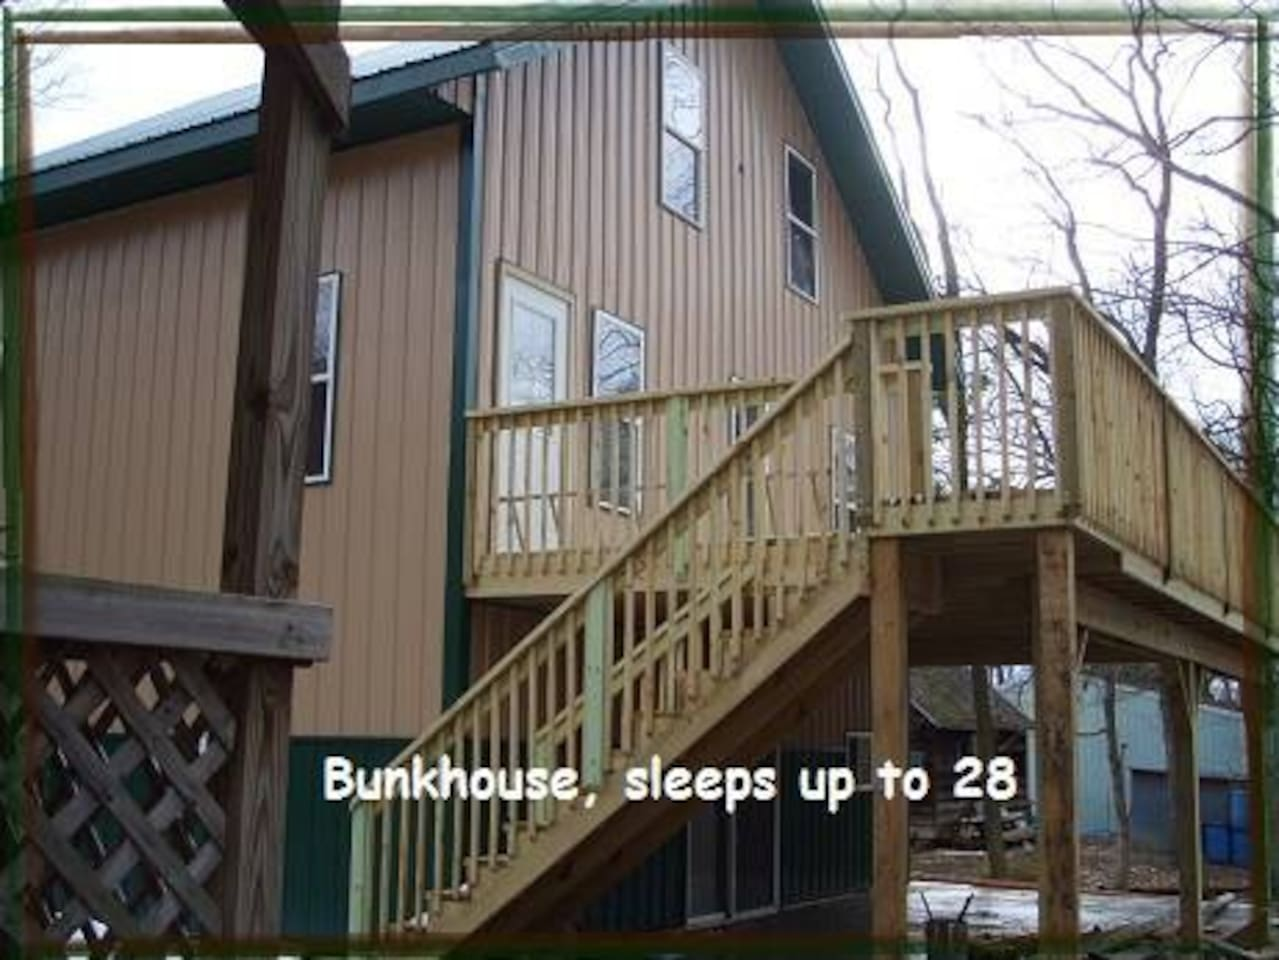 Outside the Bunkhouse over looking Ravine